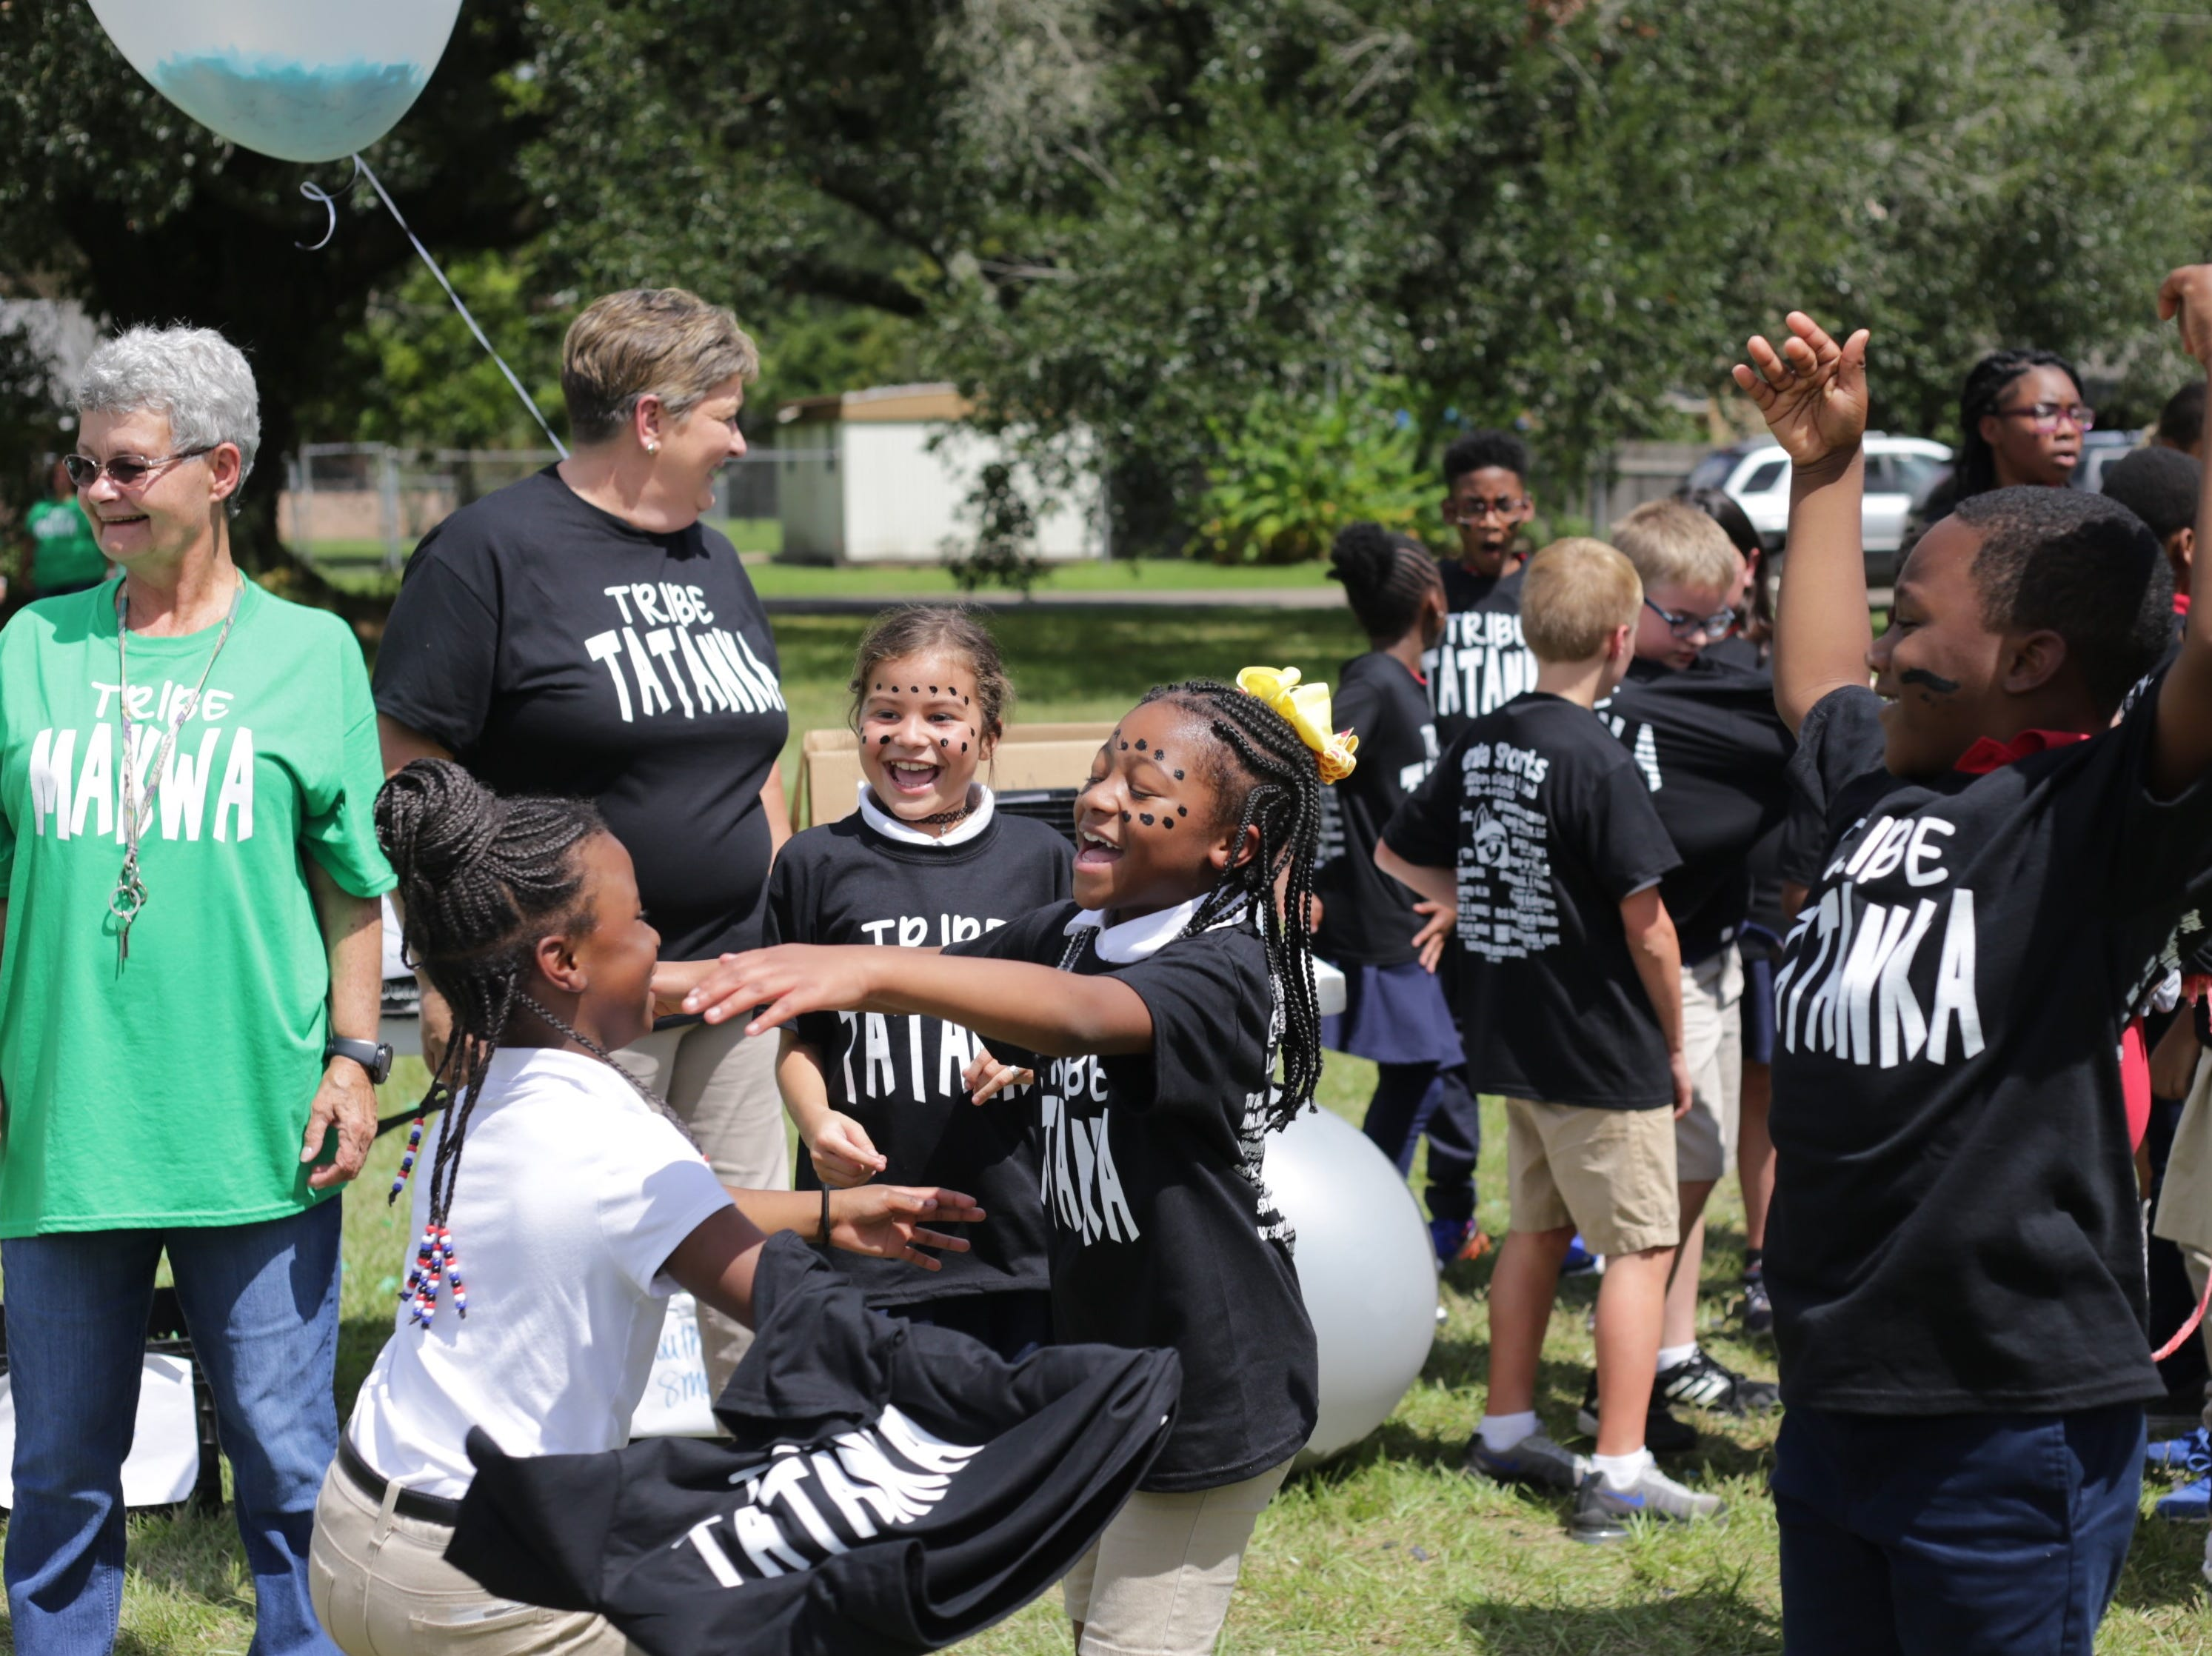 (From left) Paraprofessionals Marlene McCauley and Linda Watts along with third-graders Ja'Niya Haney, Valaya Clark, Madison Waldon and Brandon Gilbert celebrate at Cherokee Elementary's tribe kick-off Thursday. The school randomly assigned students, teachers and staff to tribes this year to help foster community.